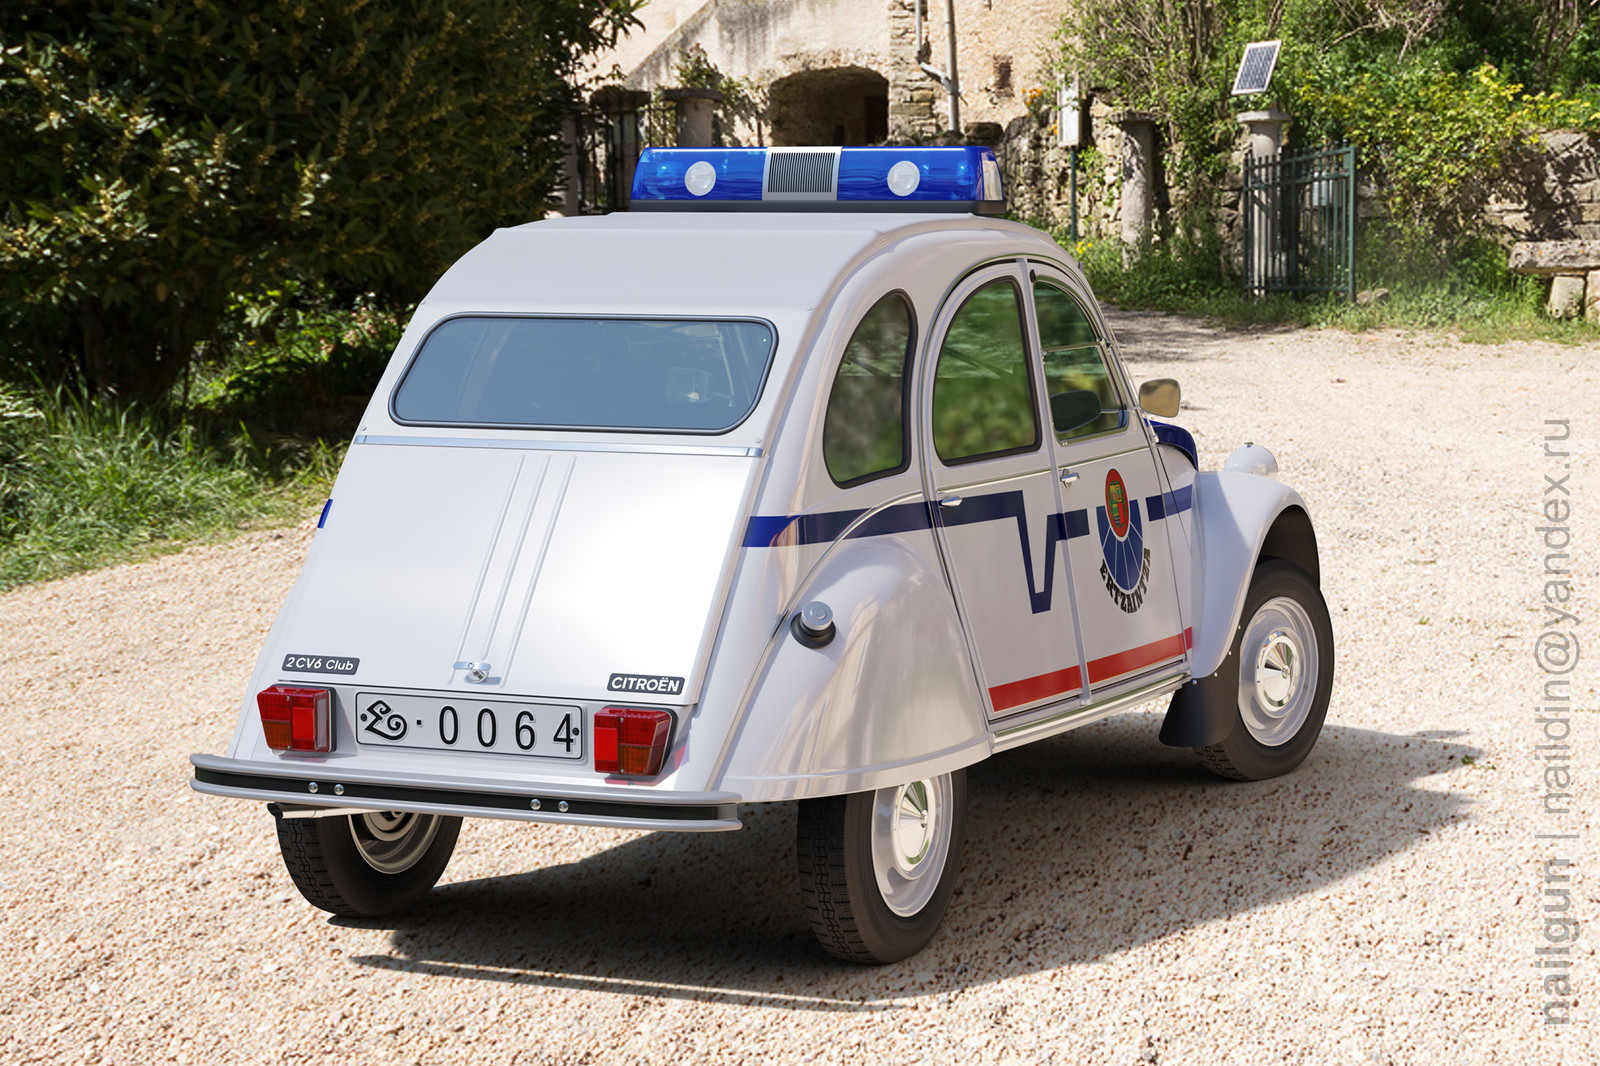 Police Basques